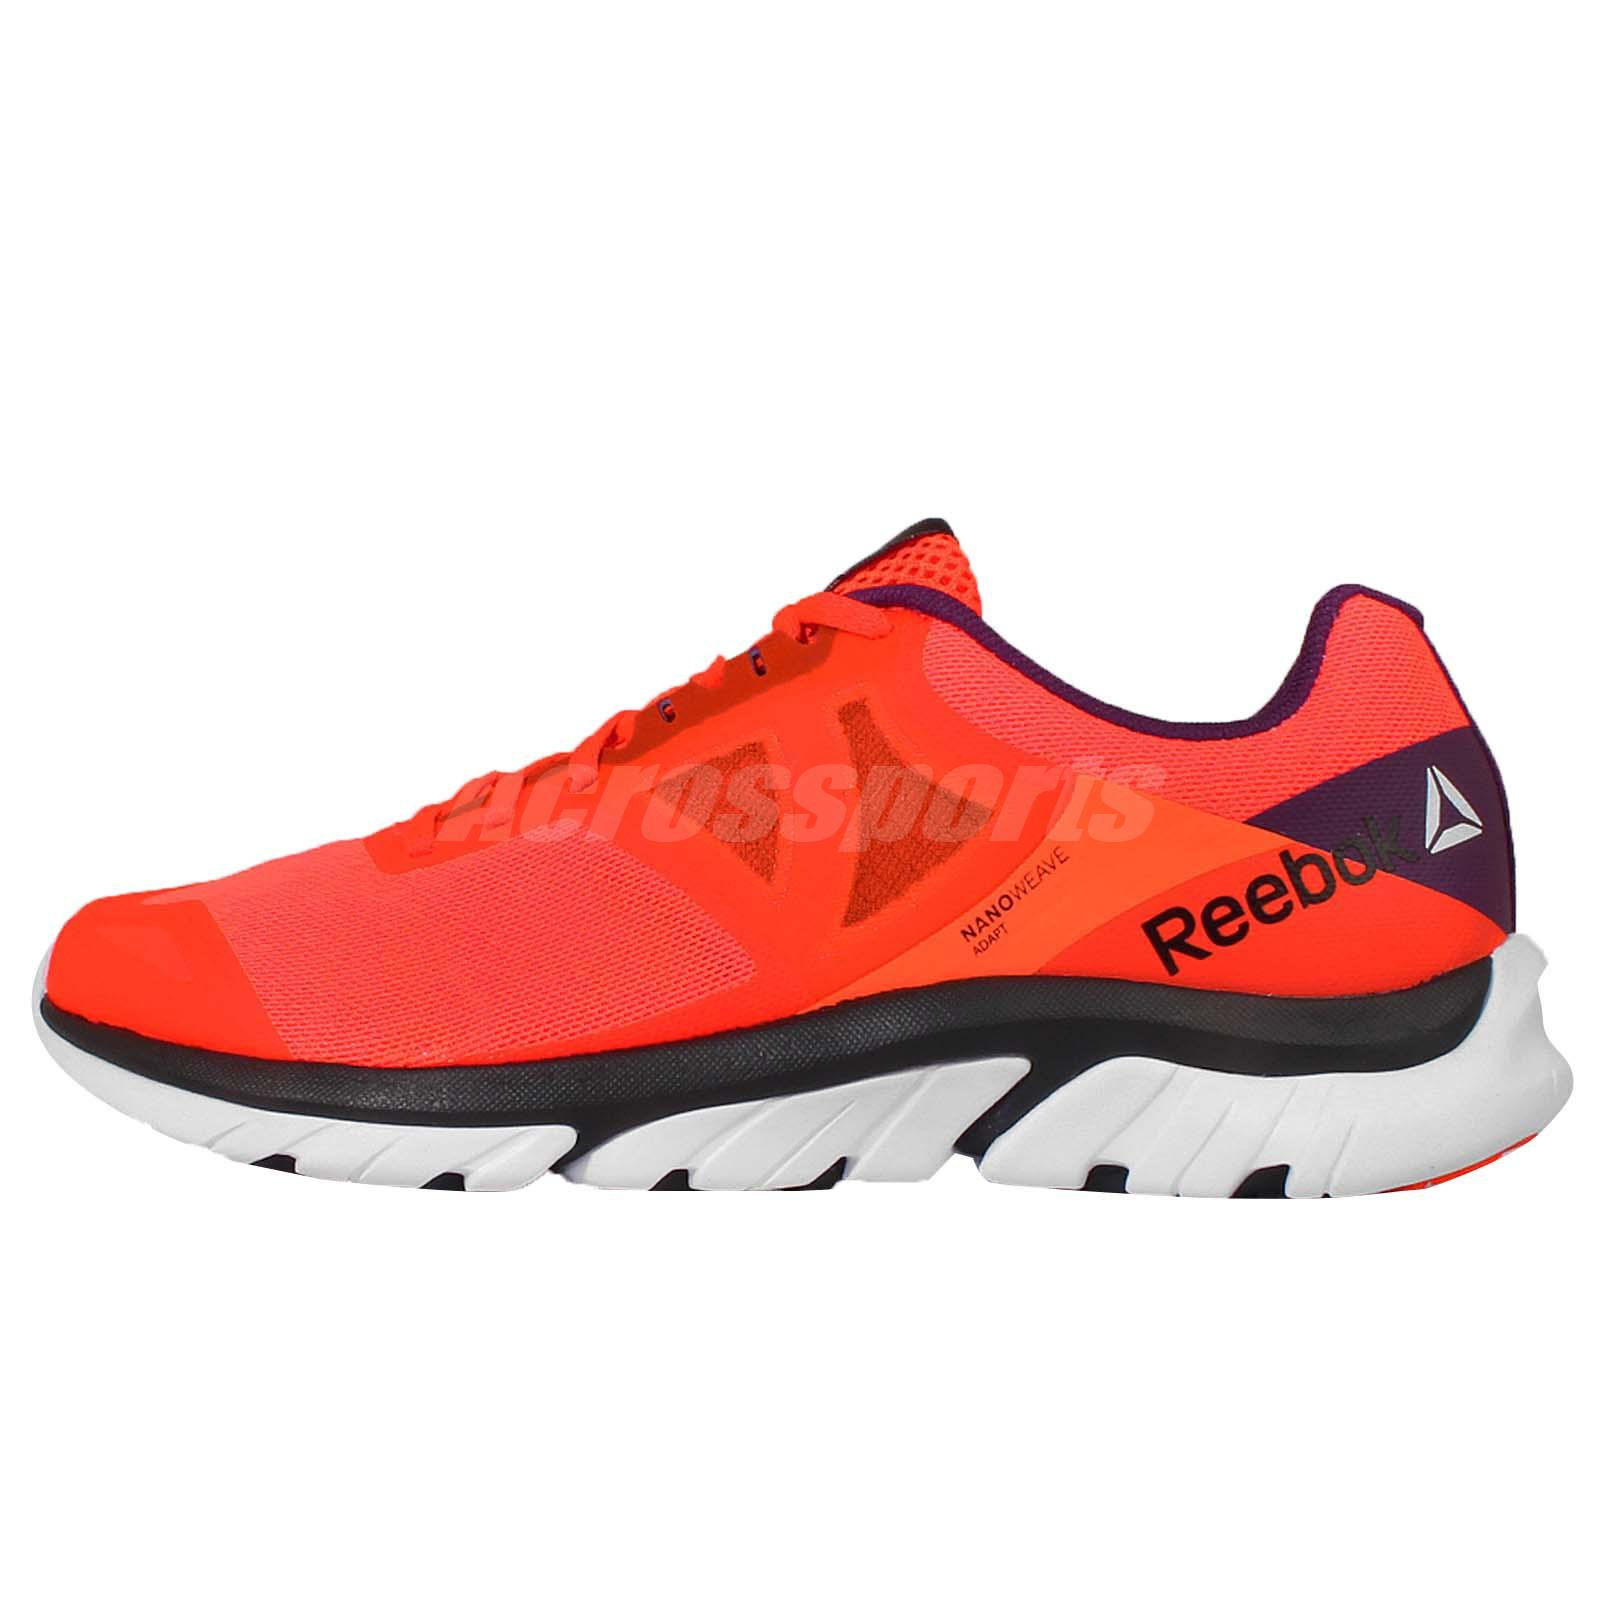 Red Reebok Shoes Womens